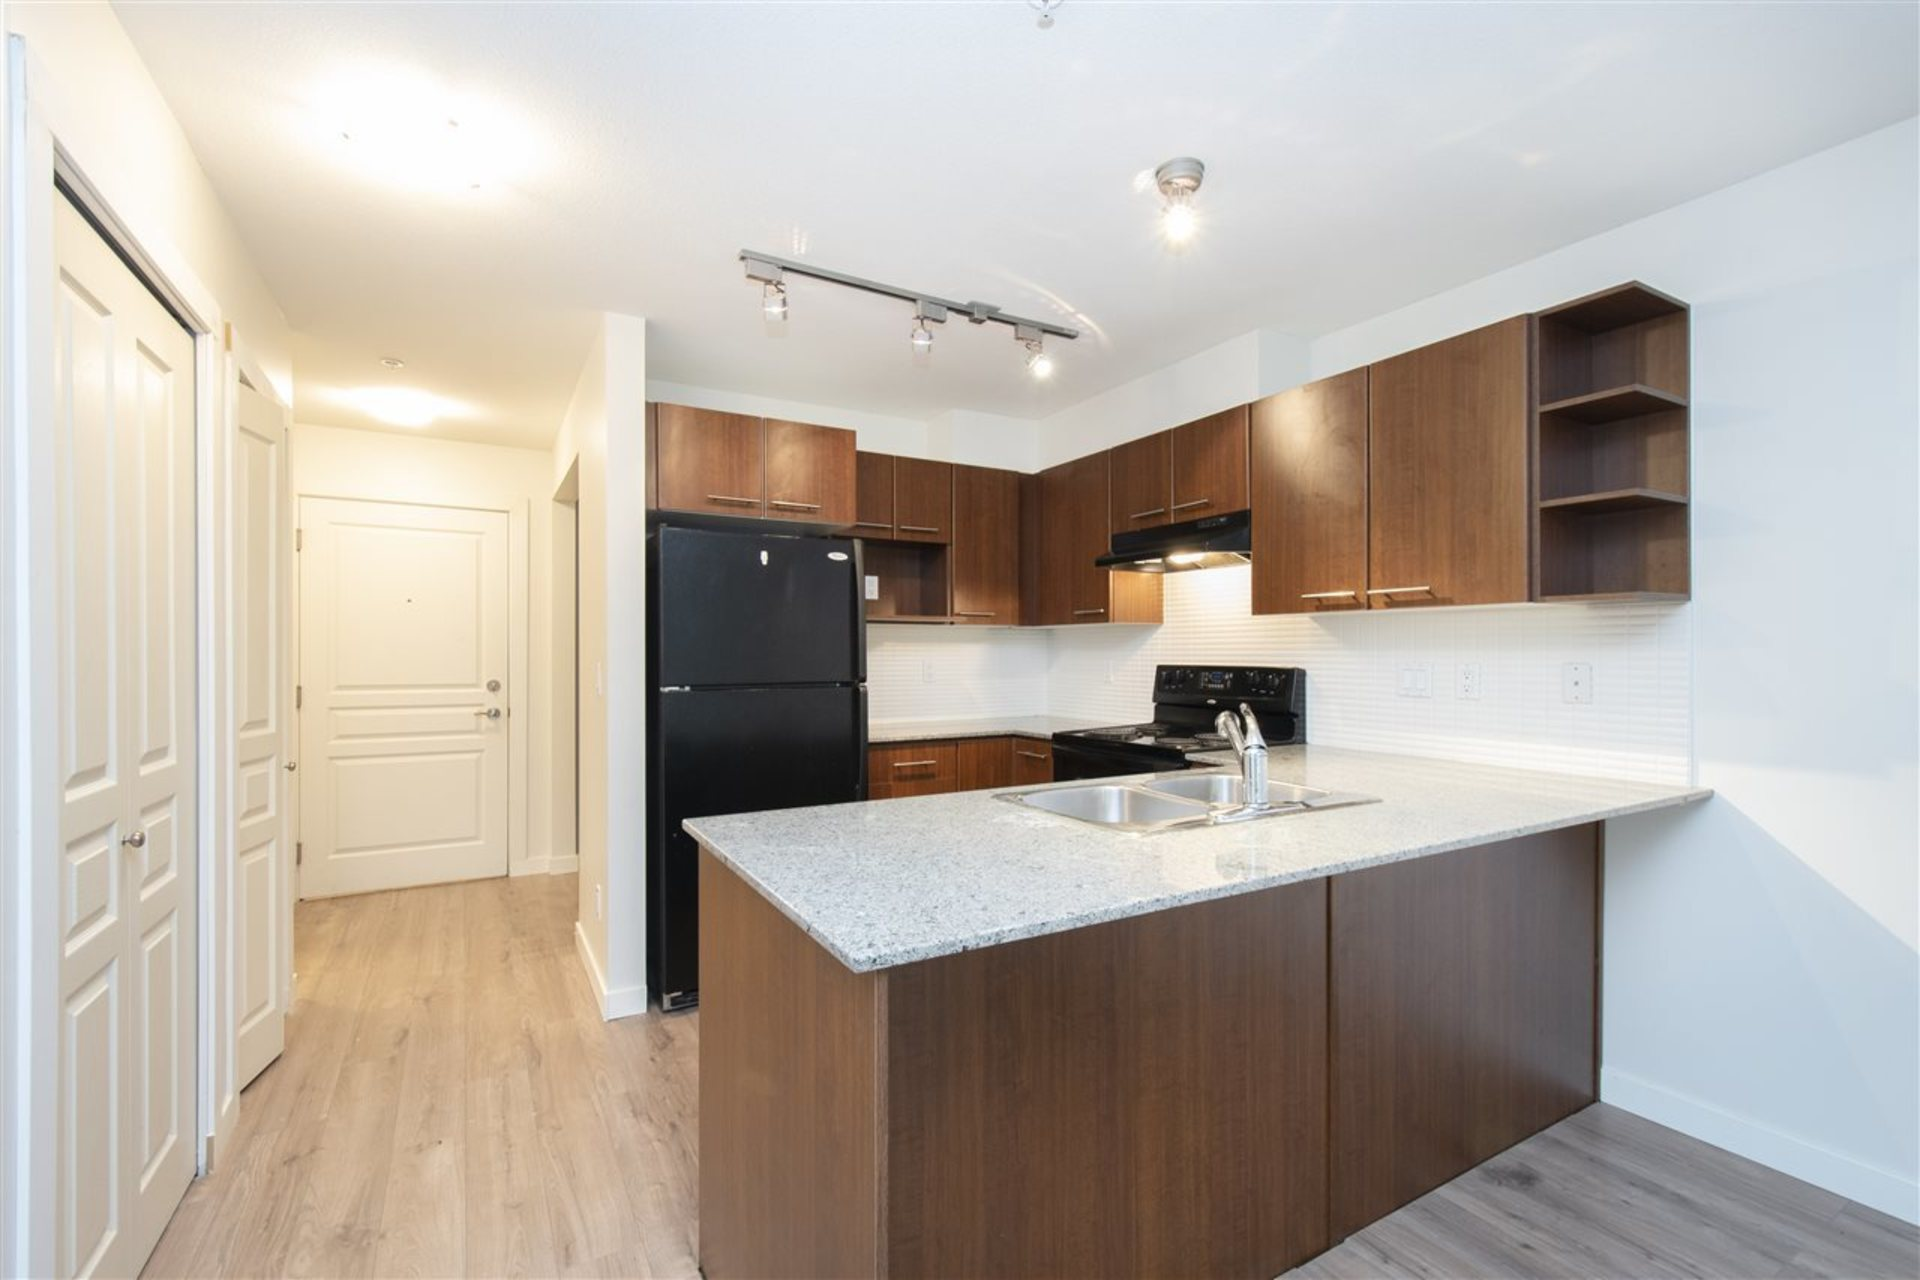 203 - 4833 Brentwood Drive, Brentwood Park, Burnaby North